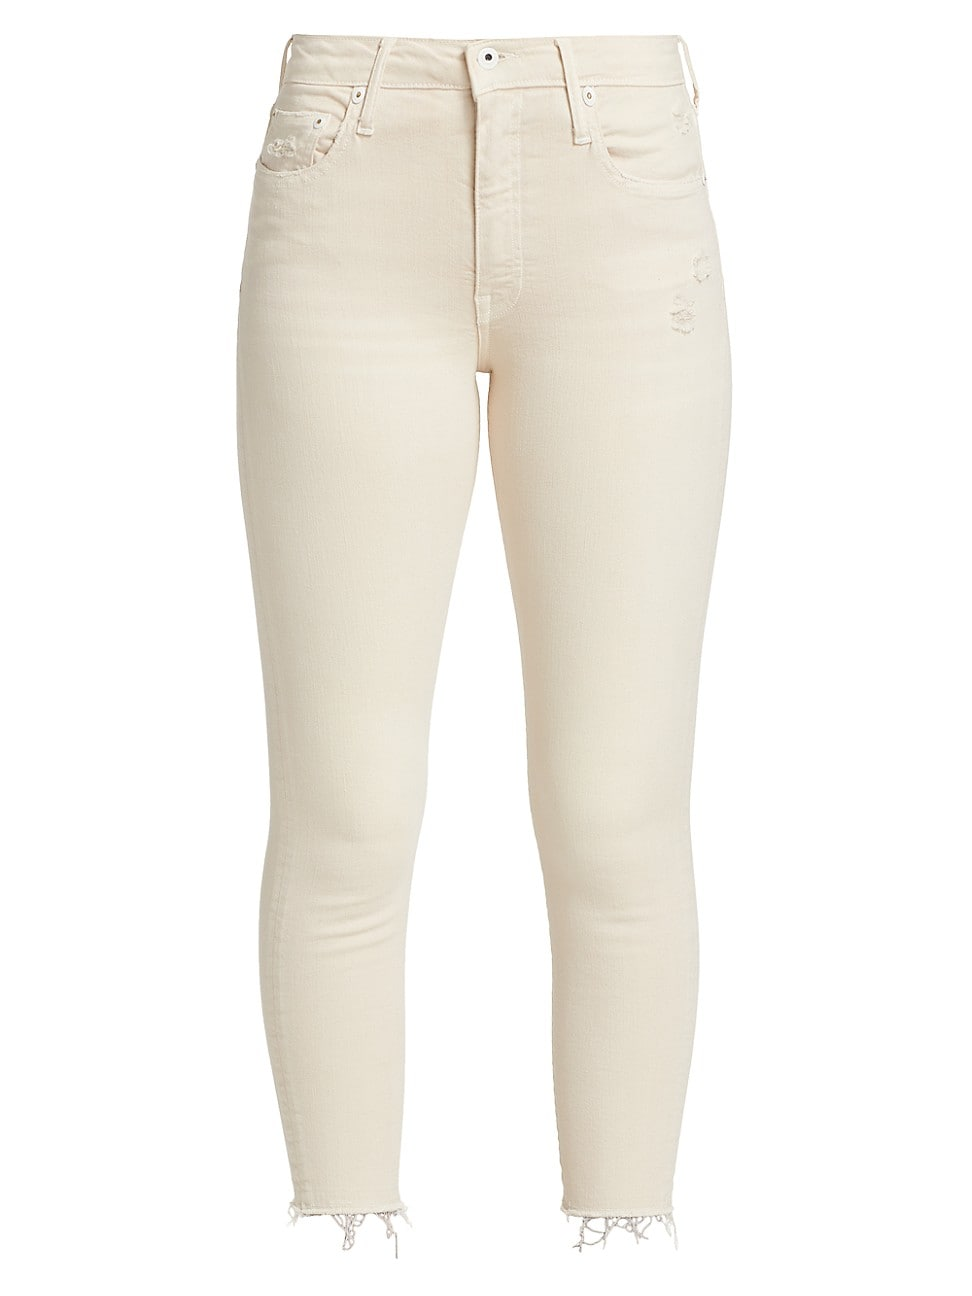 Jonathan Simkhai Standard WOMEN'S COSTA MID-RISE CROPPED SKINNY JEANS